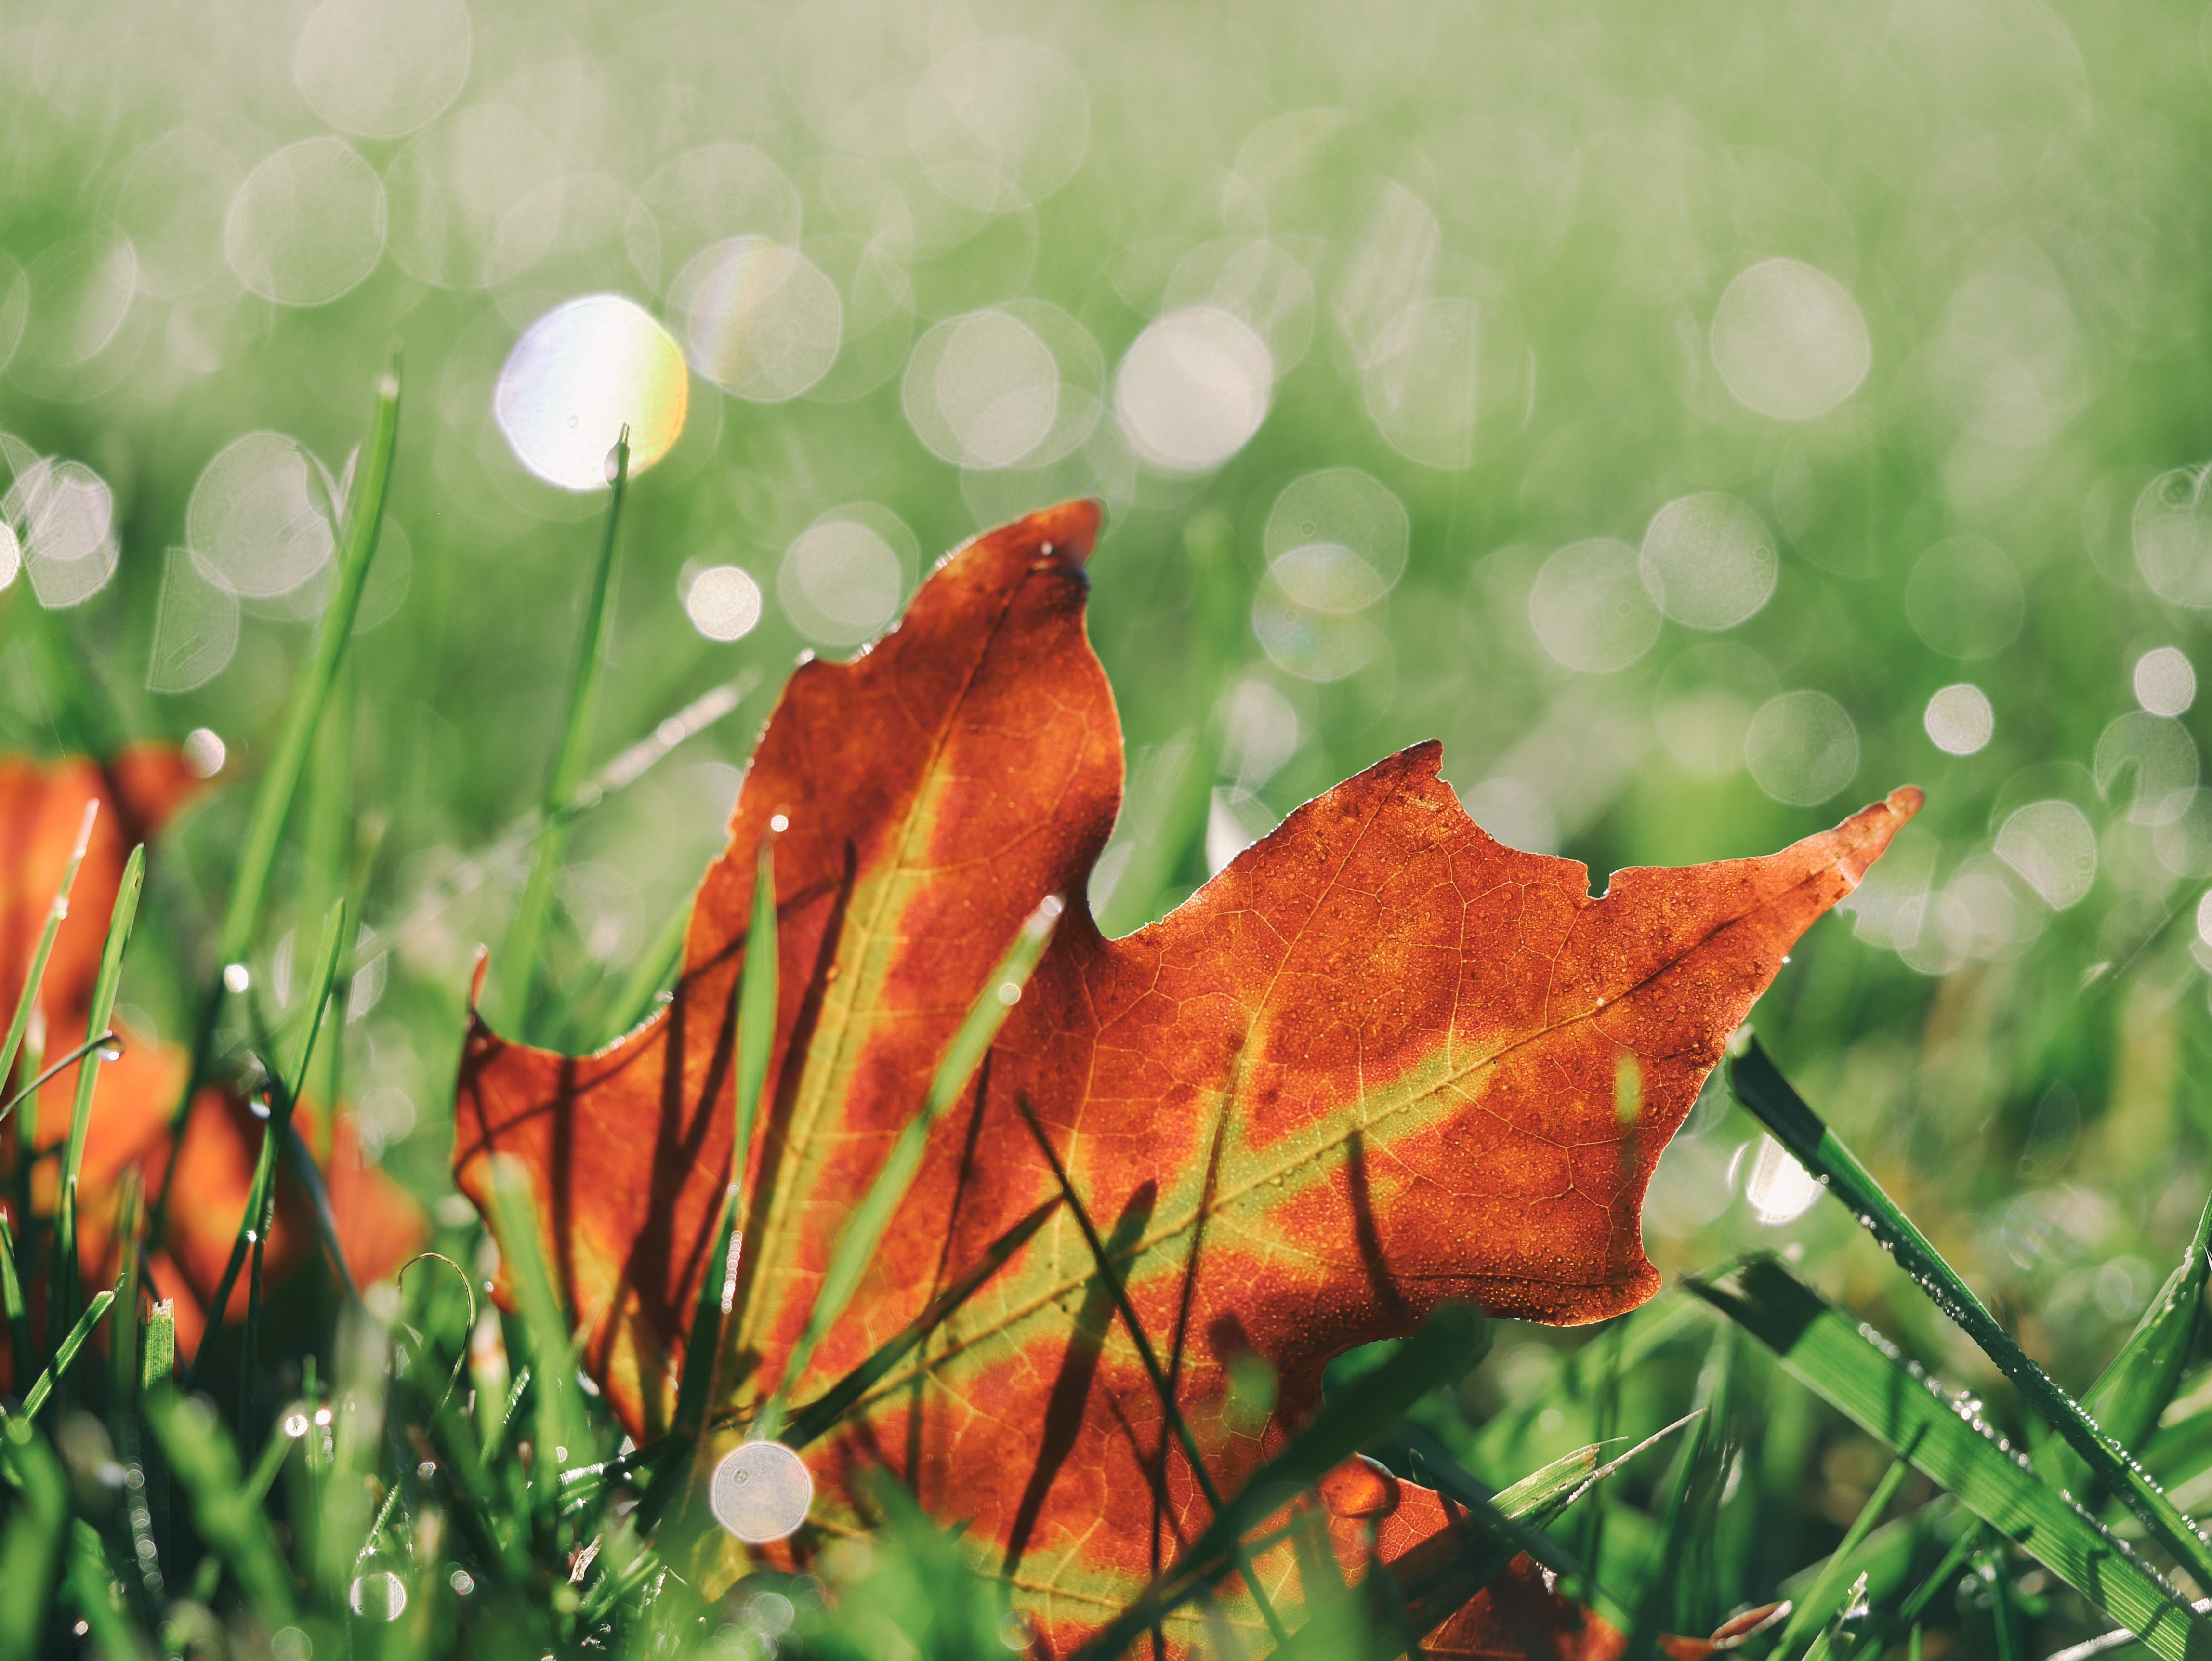 macro photo of red maple leaf on grass